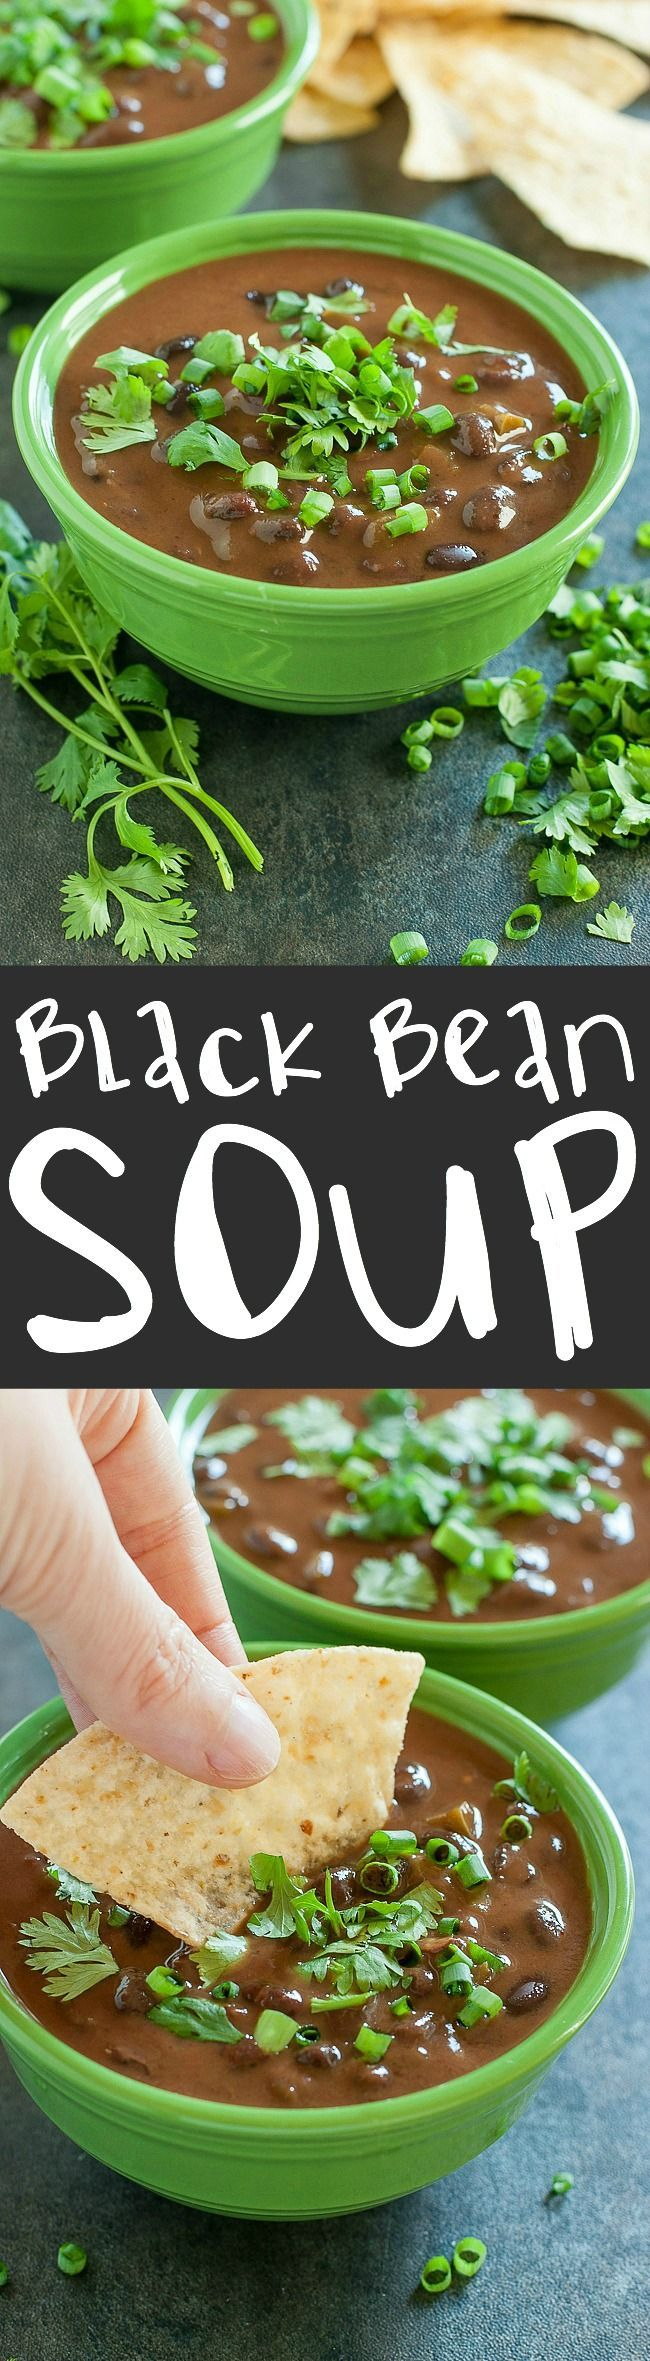 Slow Cooker Black Bean Soup - Take the night off and let the crock-pot do all the work!